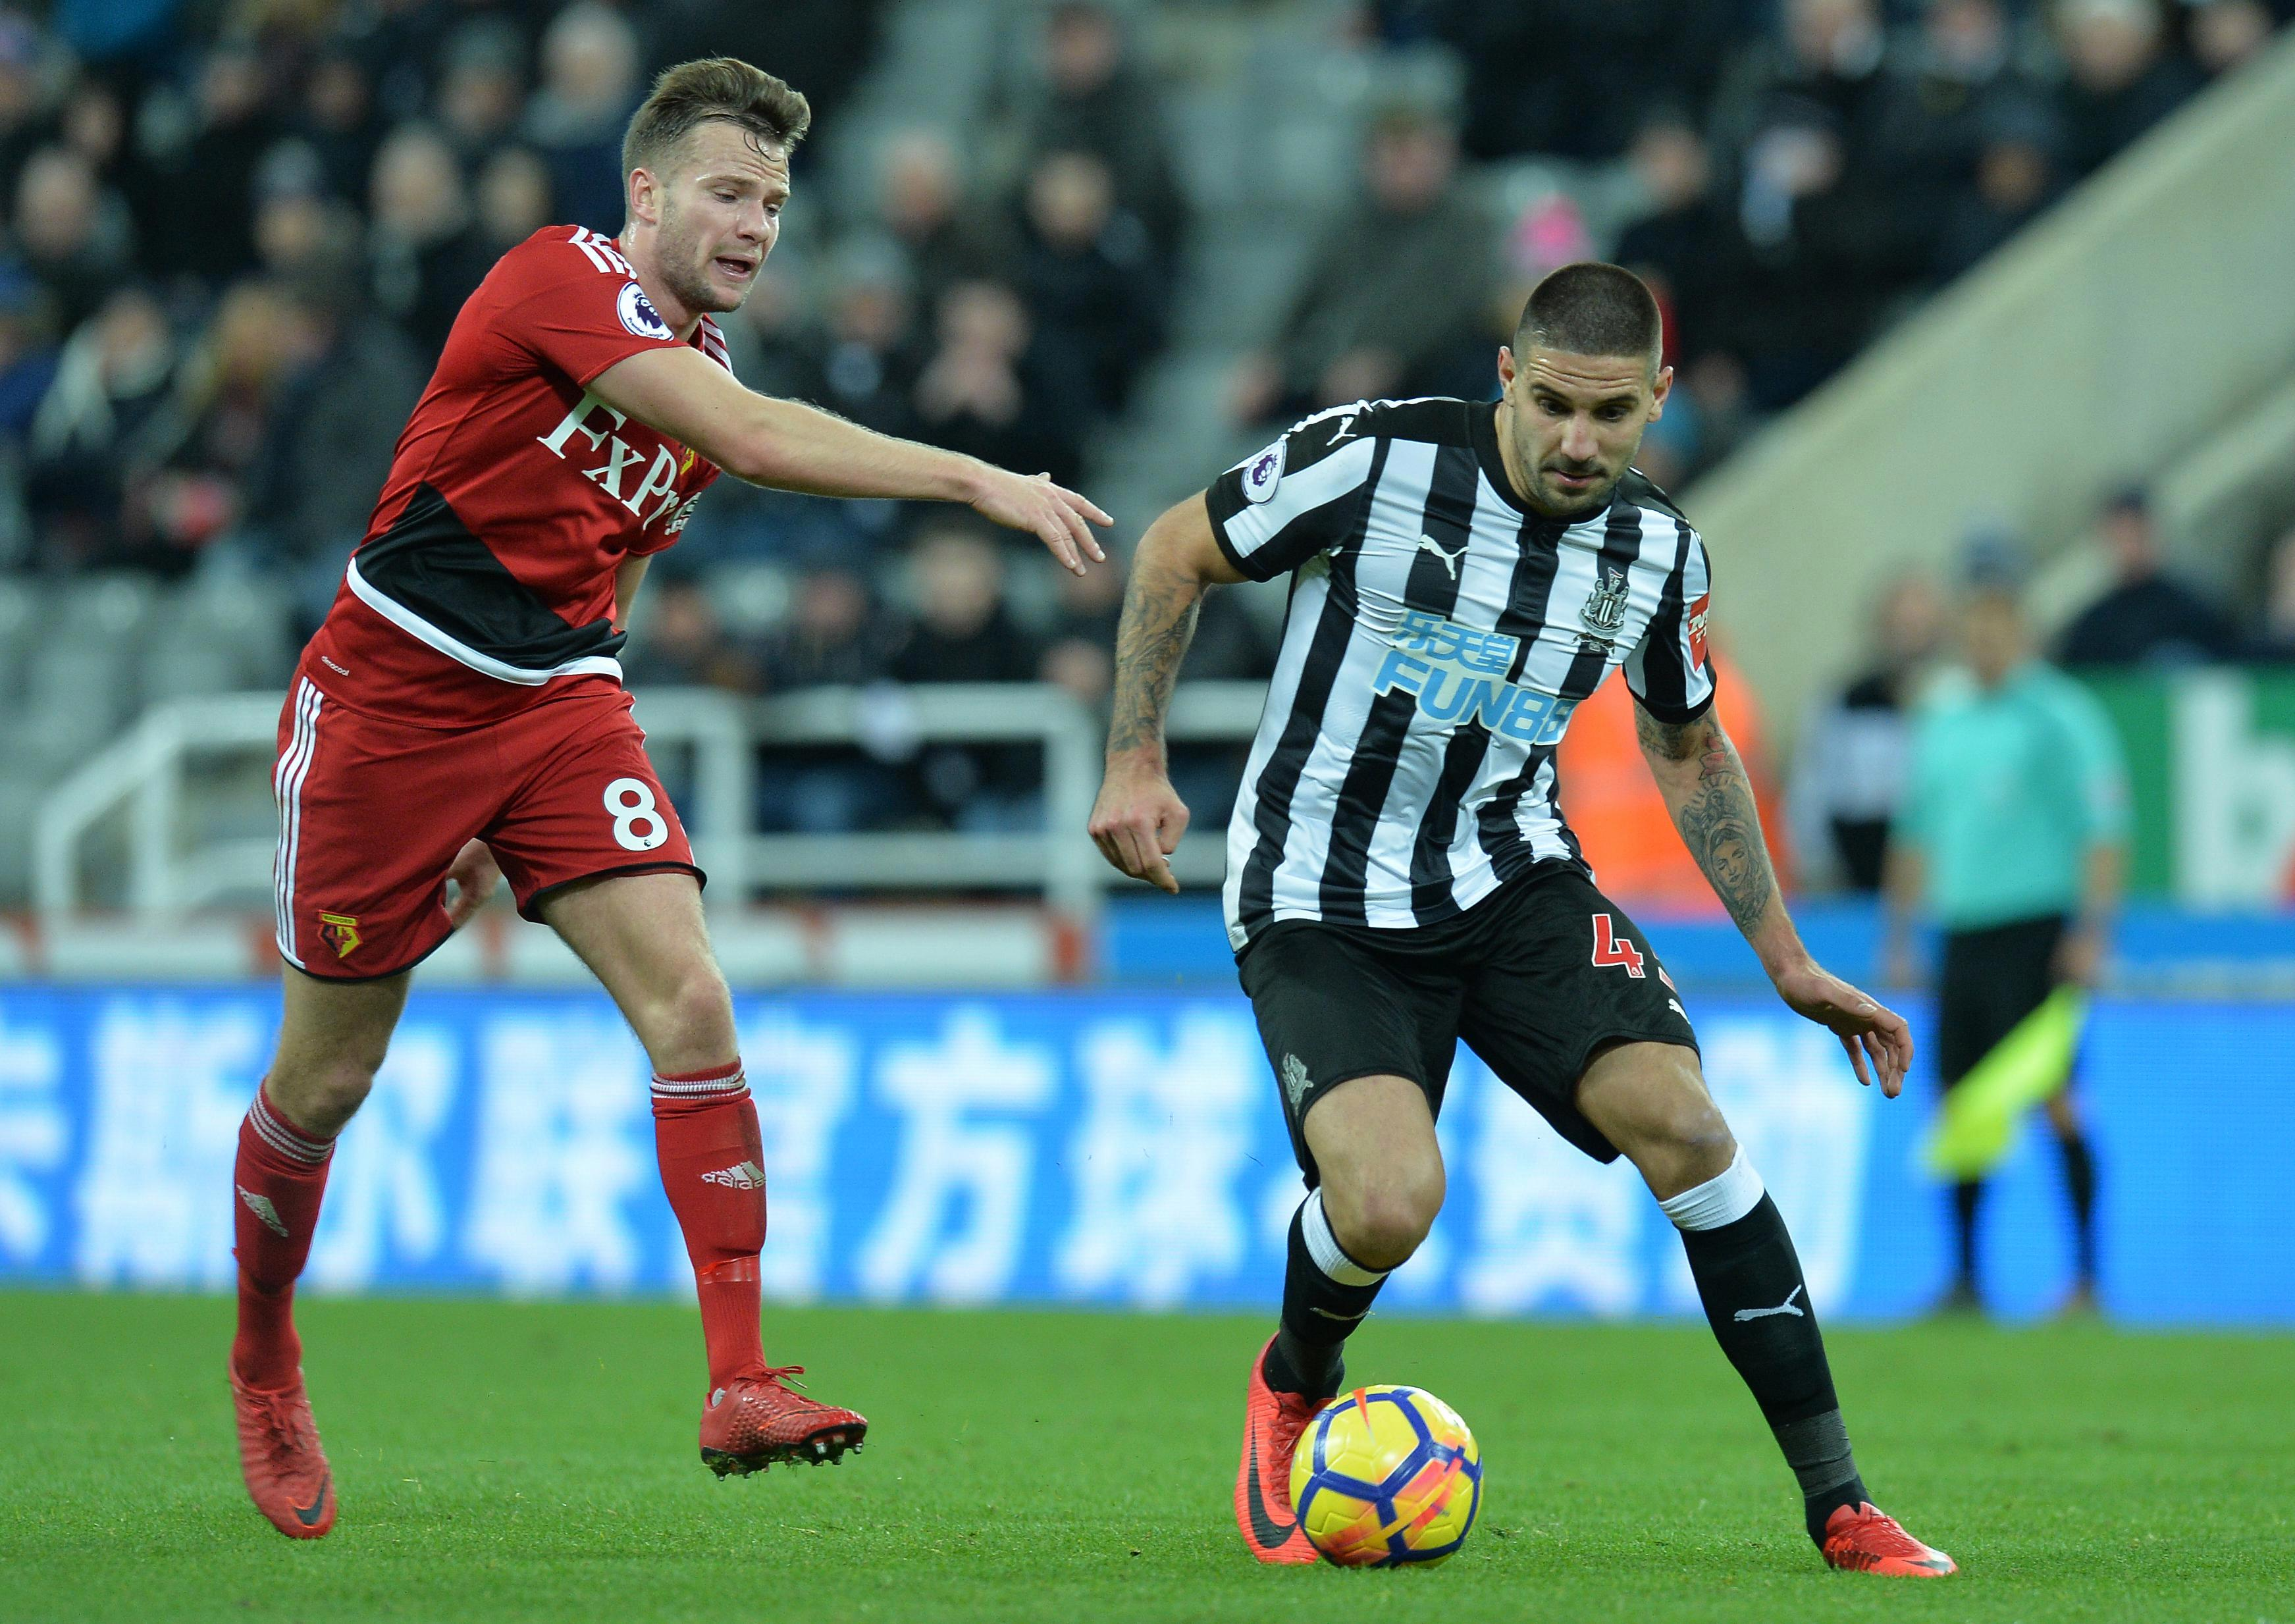 Newcastle Mitrovic